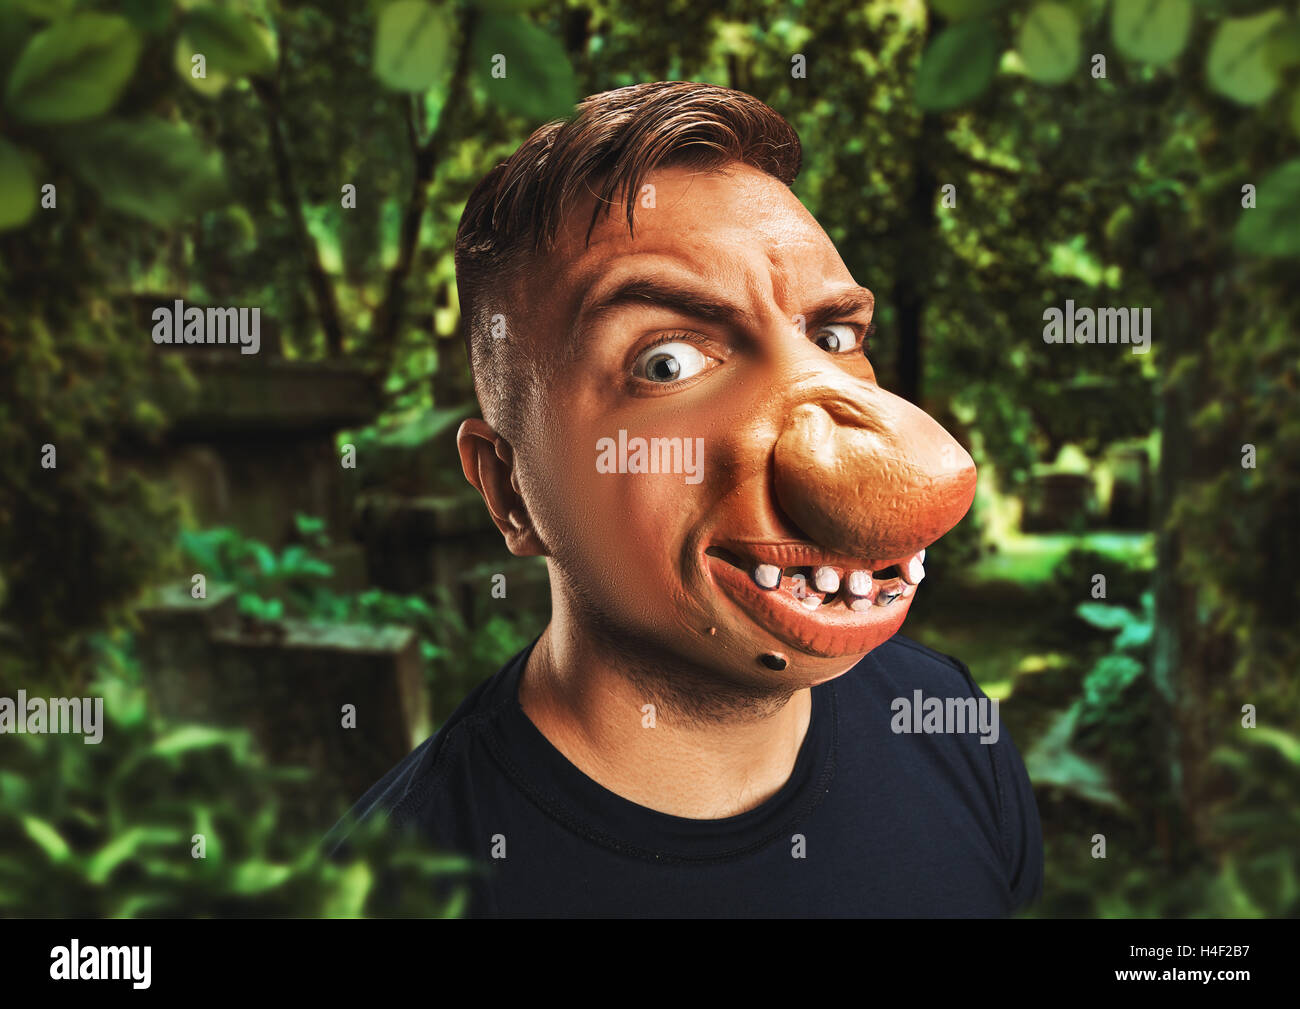 Man with an ugly face - Stock Image